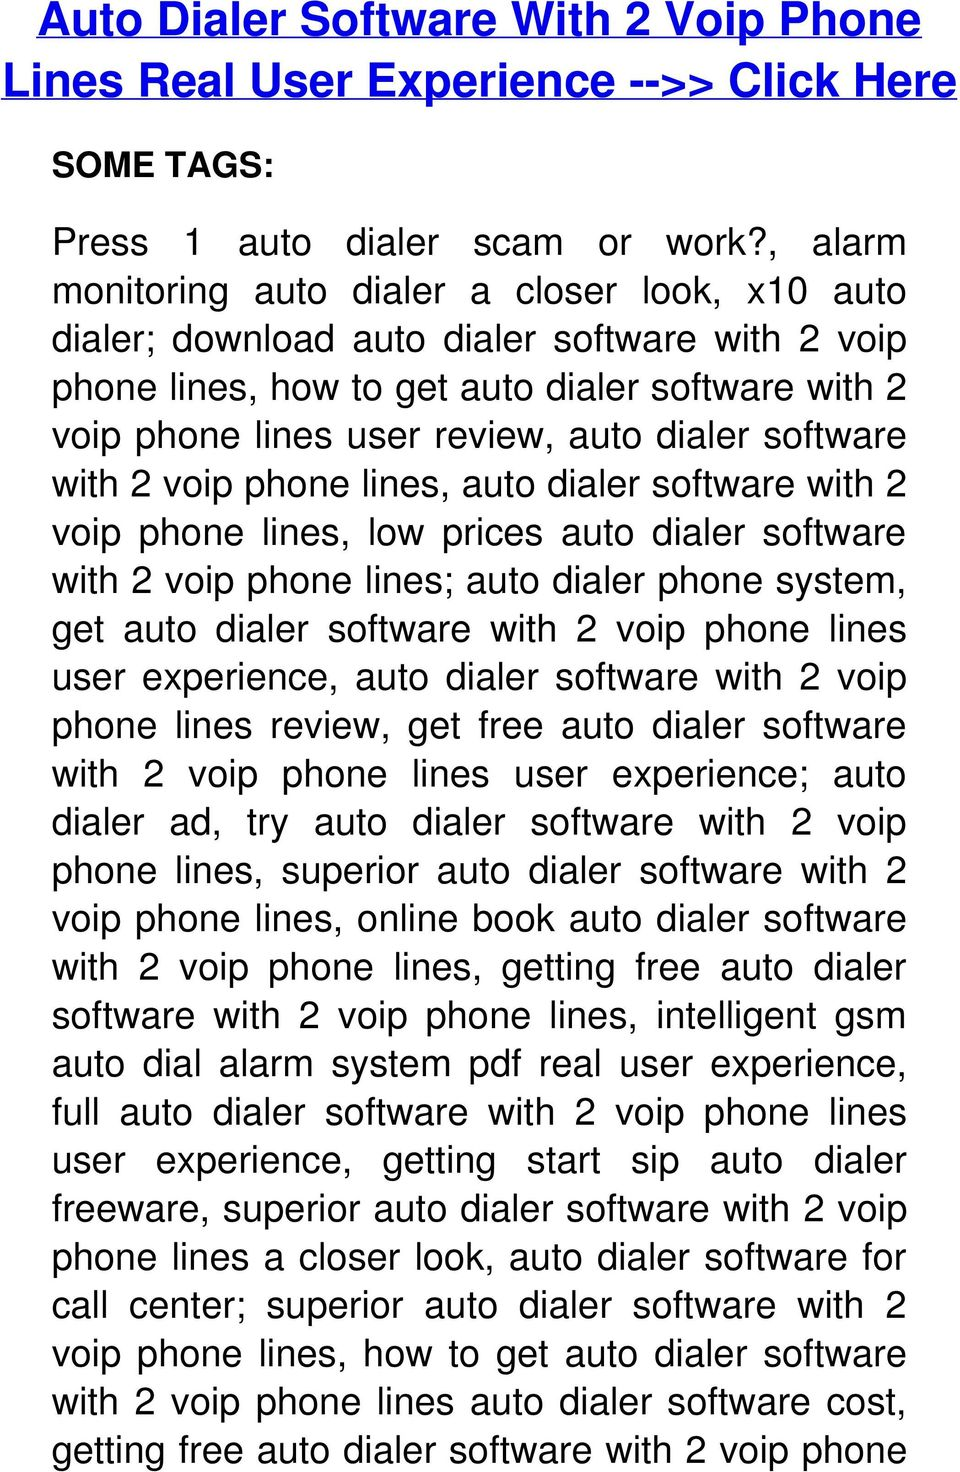 software with 2 voip phone lines, auto dialer software with 2 voip phone lines, low prices auto dialer software with 2 voip phone lines; auto dialer phone system, get auto dialer software with 2 voip